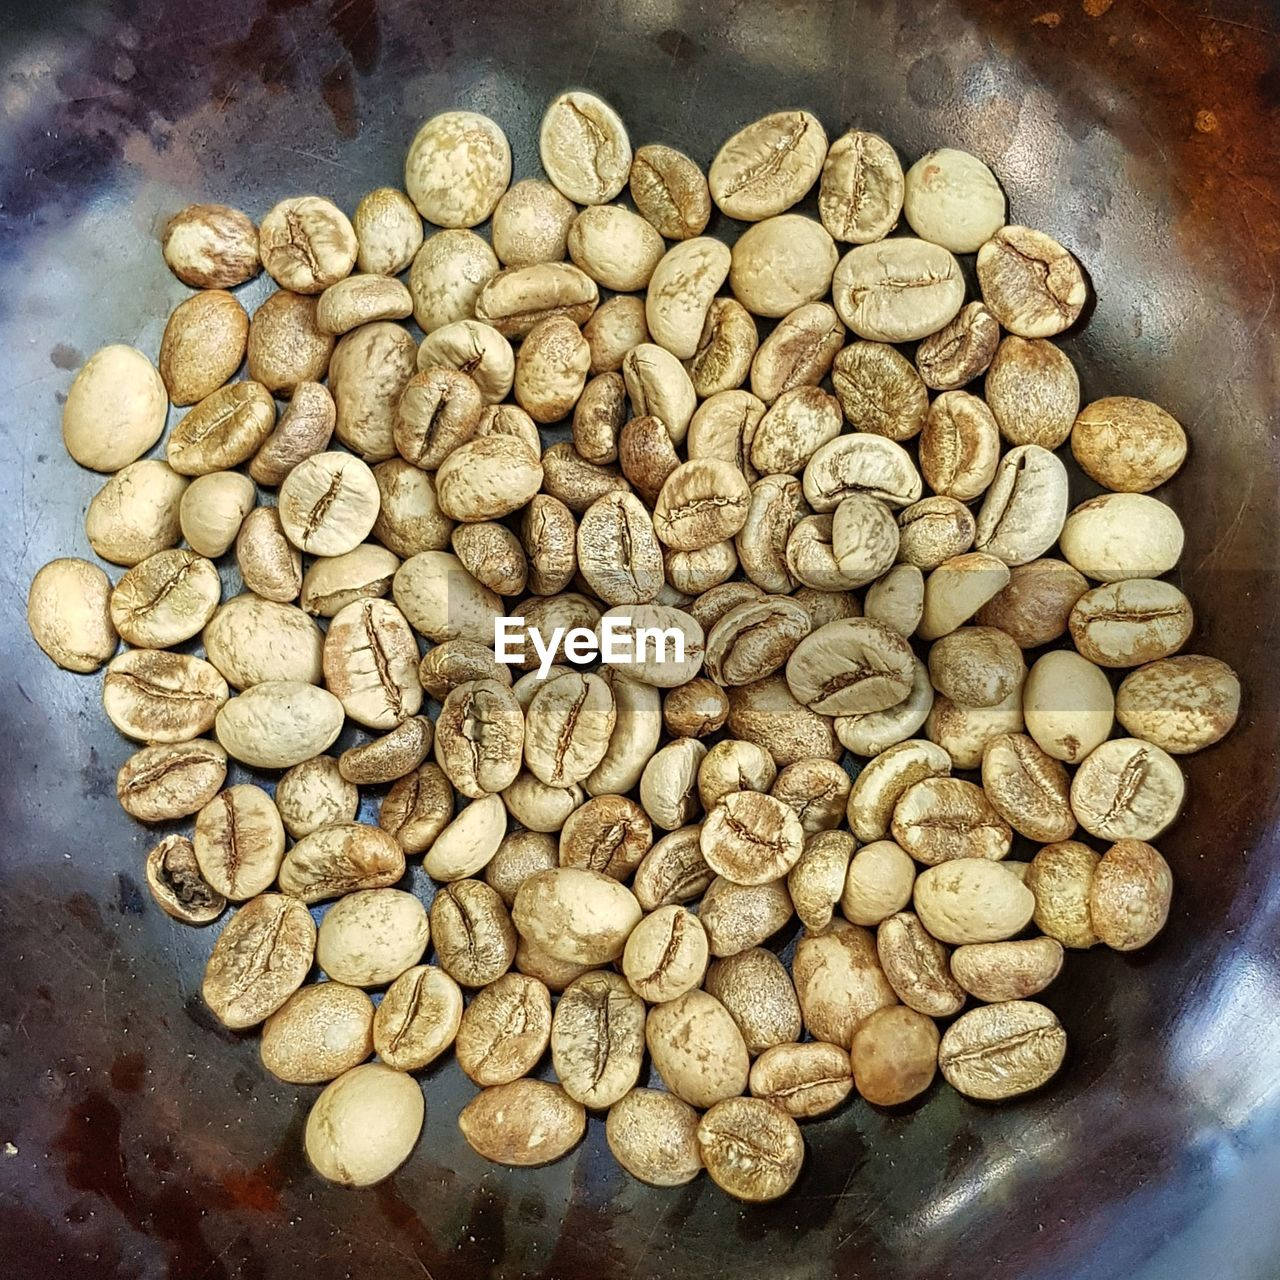 food and drink, food, still life, high angle view, abundance, freshness, large group of objects, indoors, no people, close-up, nut, coffee - drink, healthy eating, coffee, collection, wellbeing, container, roasted, day, coffee bean, snack, caffeine